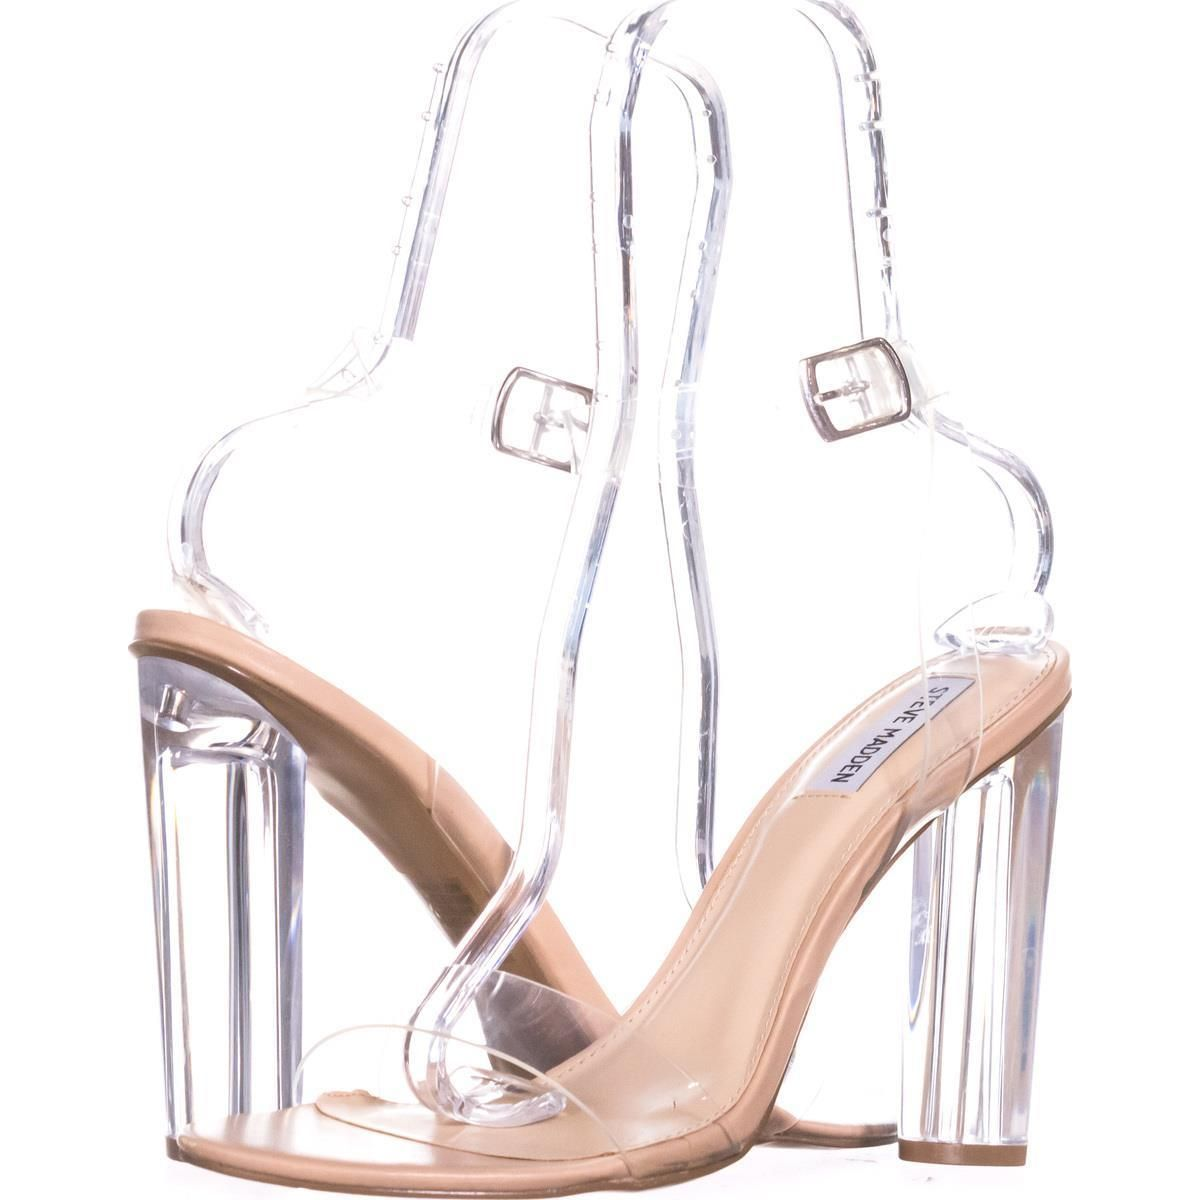 6e501f1c8ee Steve Madden Teena Ankle Strap Sandals  stevemadden  clear  heels  sandals   anklestrap  translucent  nudeheels  shoes  shopping  style  trend  fashion  ...